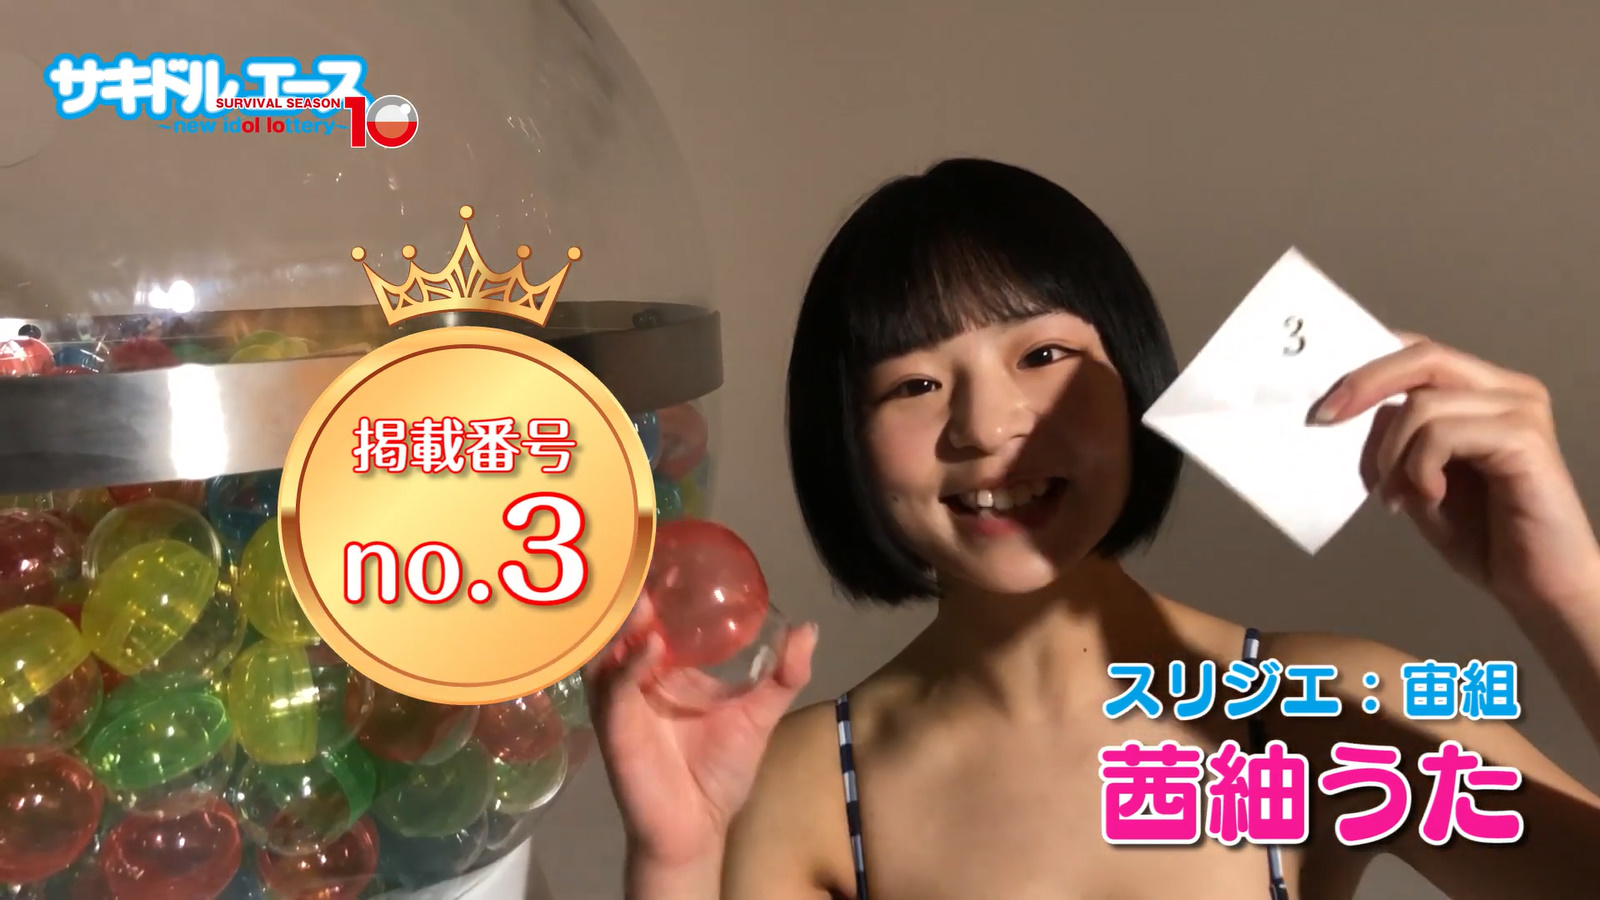 Sakidol Ace 10 Introduction Movie Capture of Swimsuit069